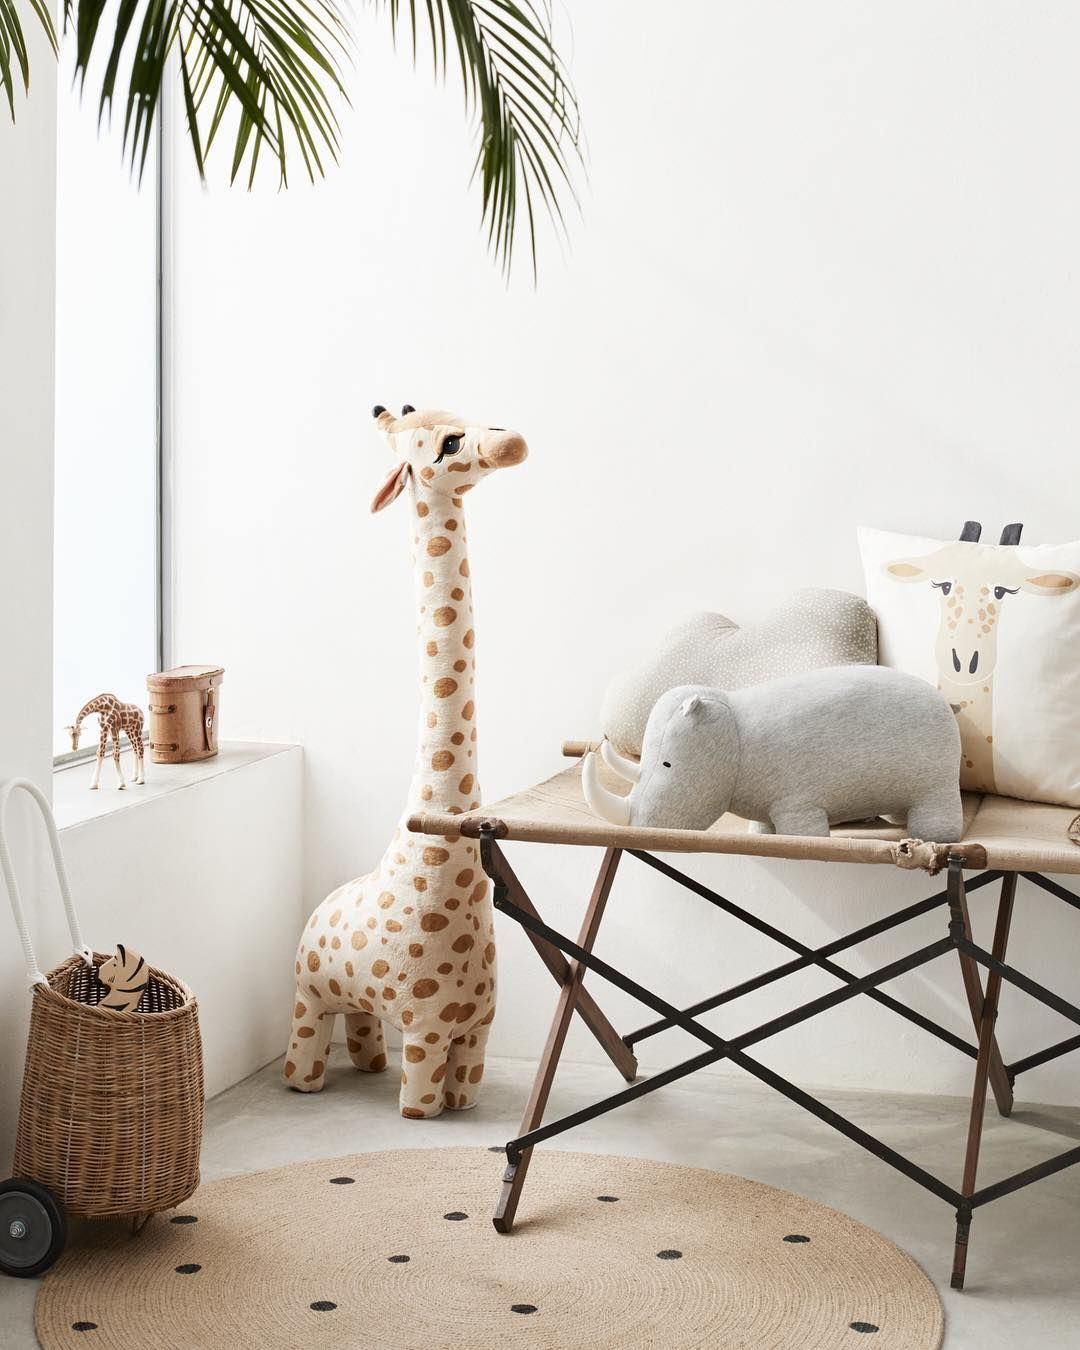 H M Home On Instagram We Re Thinking It S Probably Ok To Have This Giraffe Toy In Your Bedroom Even If You Re Not A Giraffe Toy Giraffe Room Giraffe Bedroom [ 1350 x 1080 Pixel ]